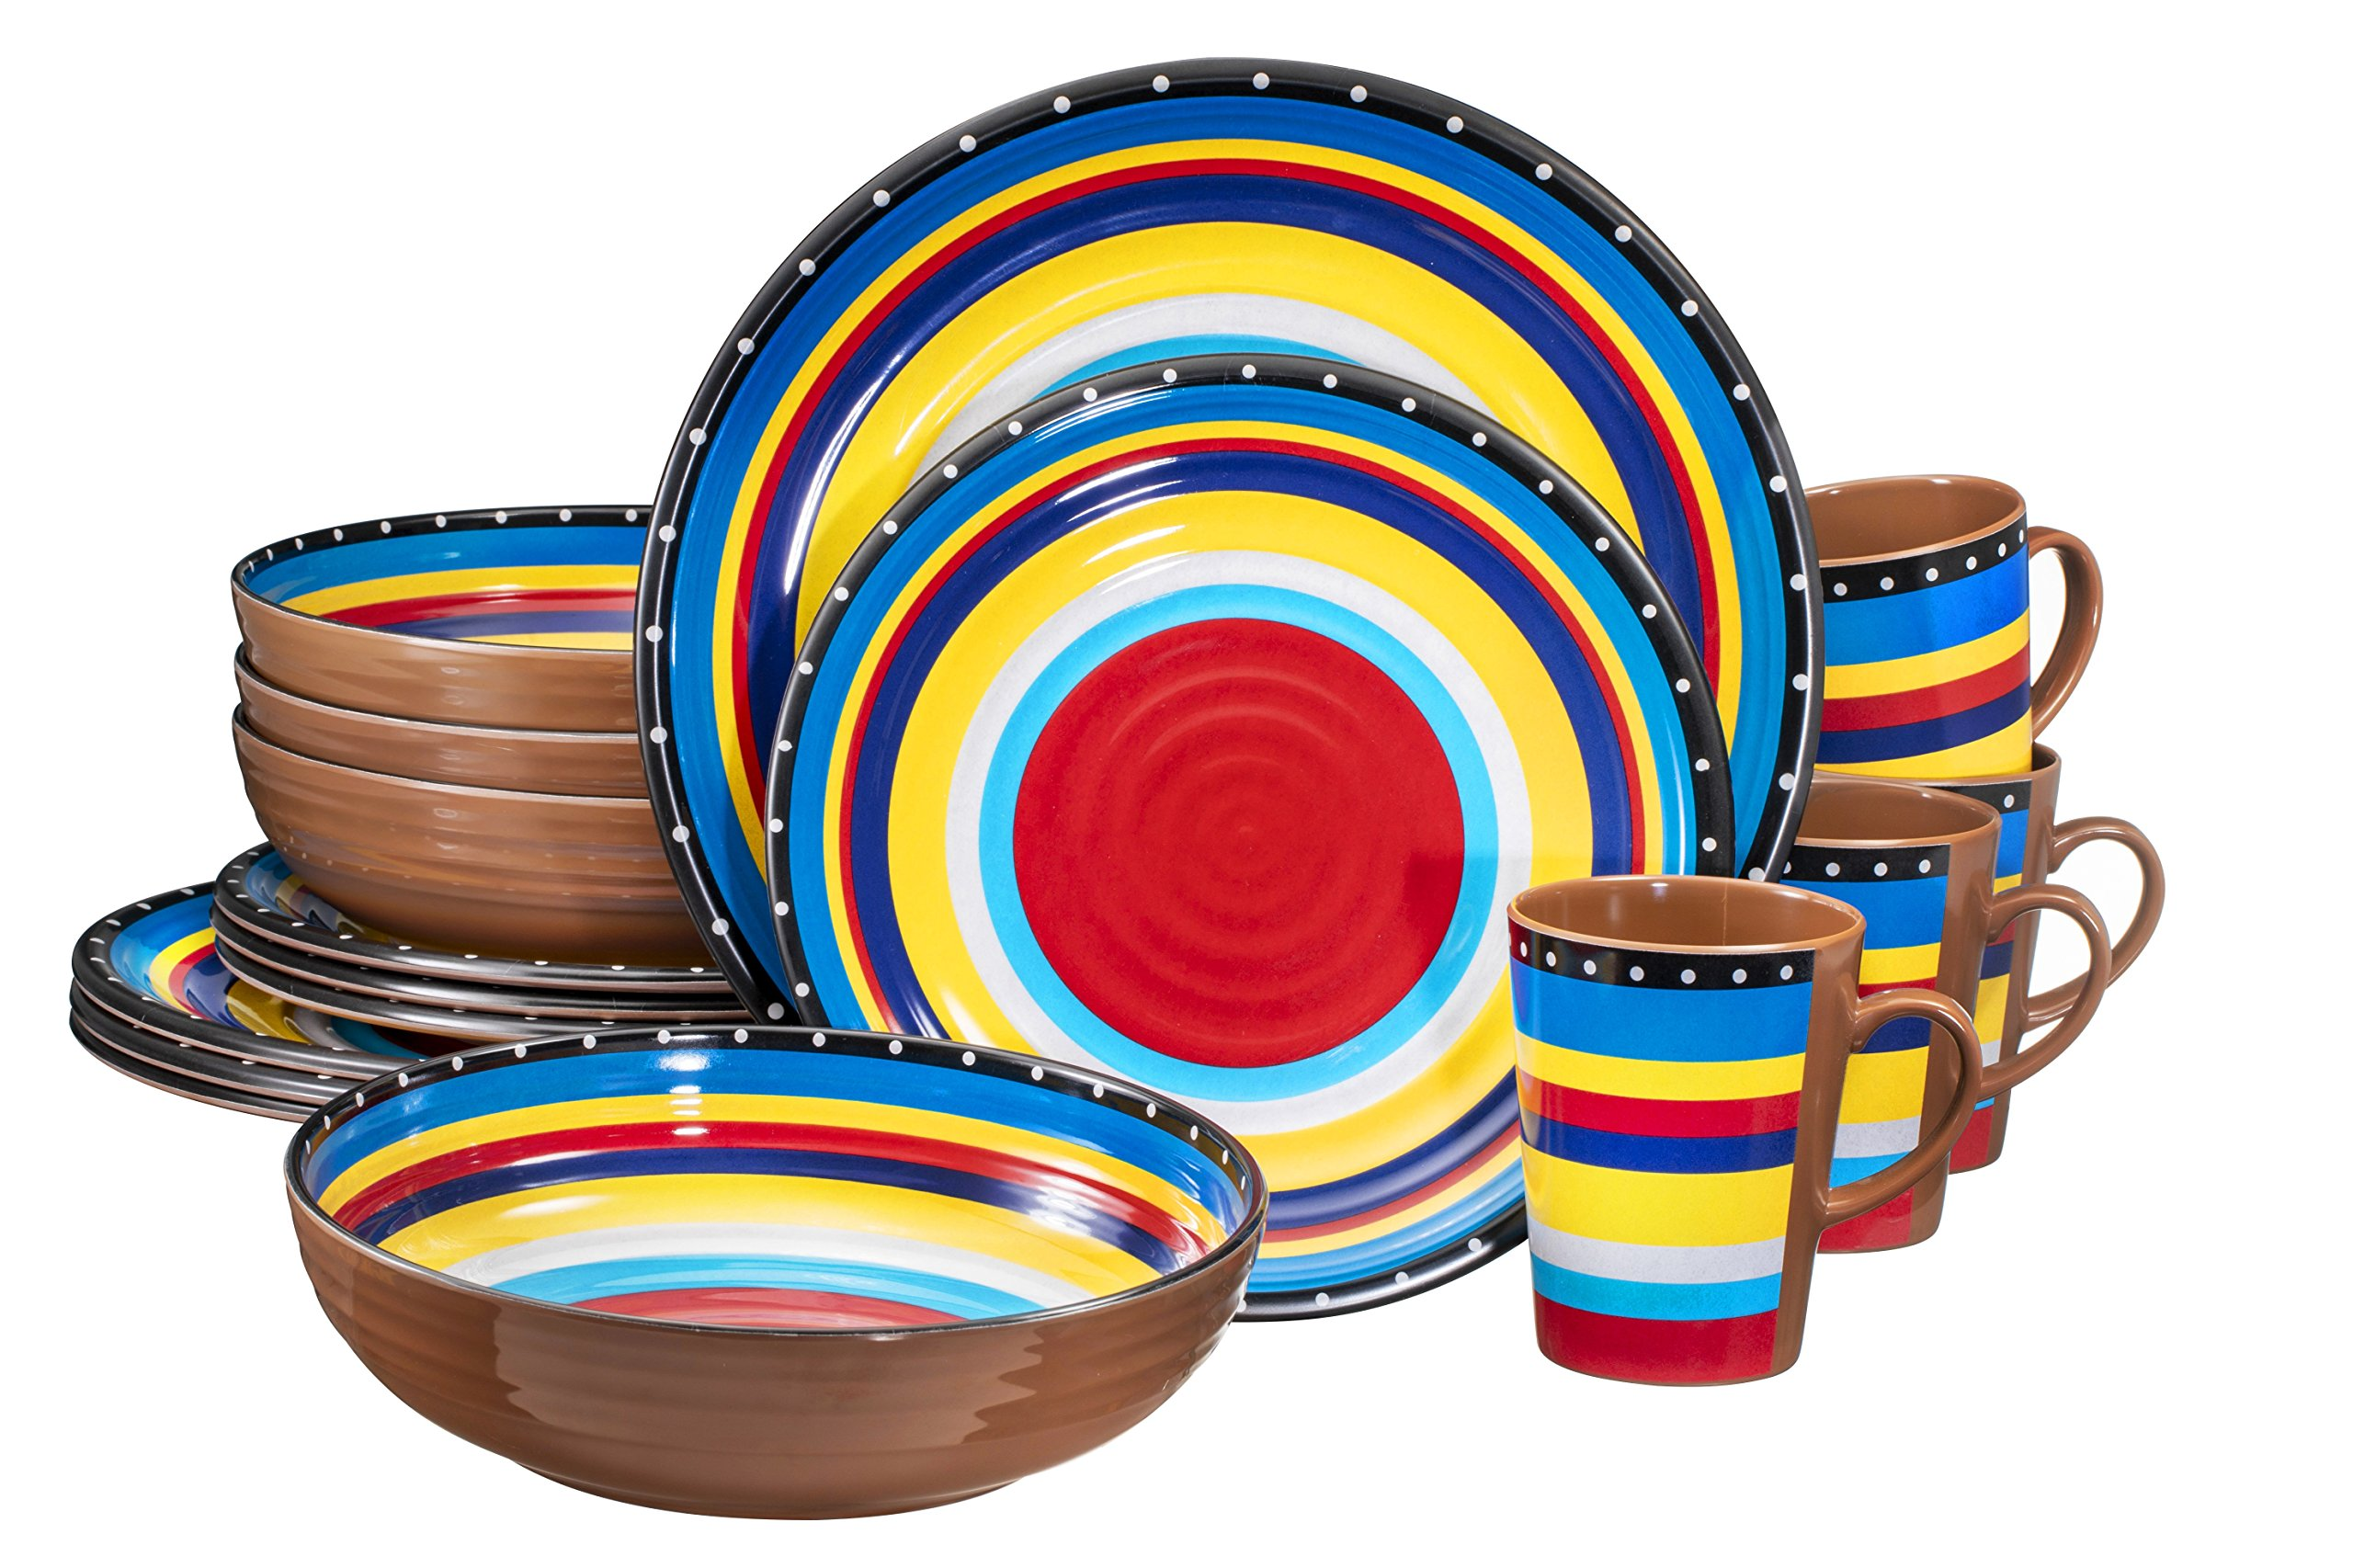 Melamine Dinnerware Set, 16 Piece, Service for 4